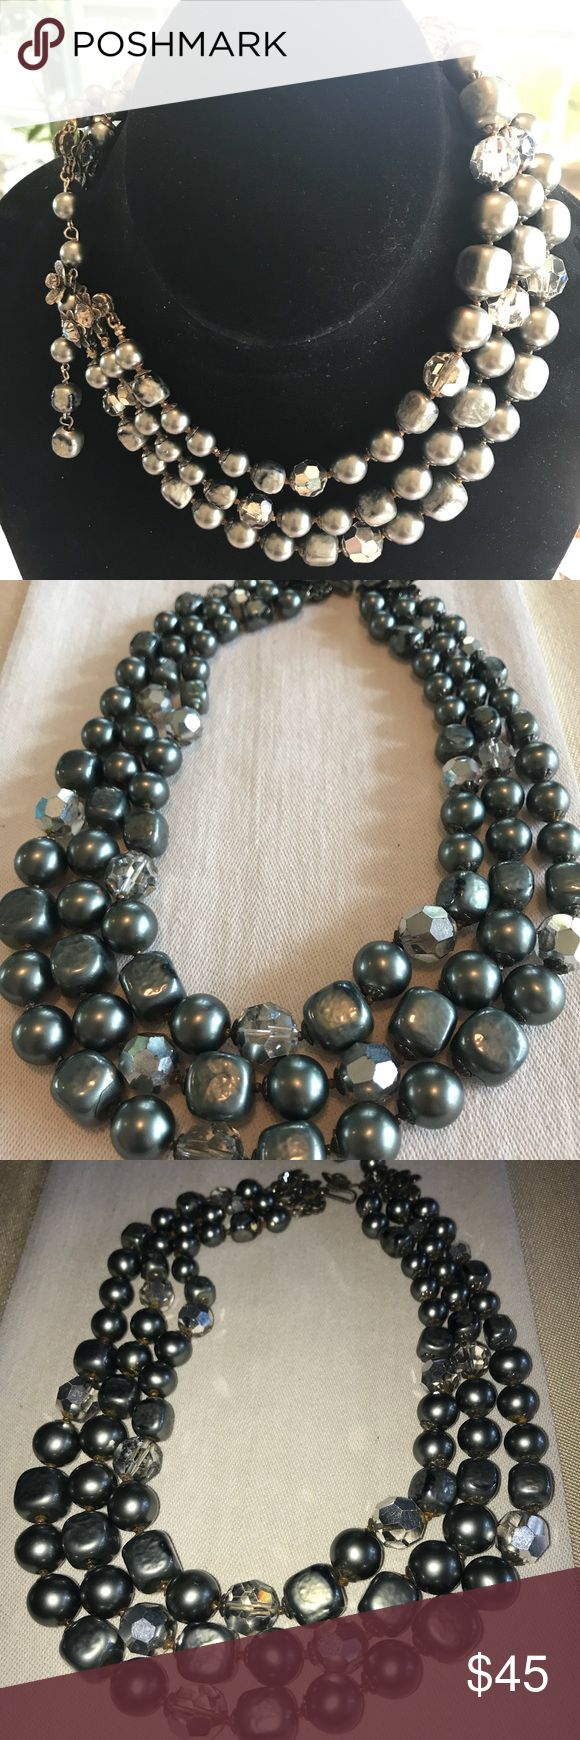 """Antique De Mario grey faux pearl necklace Rare jewelry maker here. The necklace is 17"""" total length. Three strands. Has a beautiful clasp and hook. Clear Faceted glass beads too. It has some tiny beads as spacers and a few have rusted and discolored the string and the little beads. Not too noticeable with the darker colors. De Mario Jewelry Necklaces"""